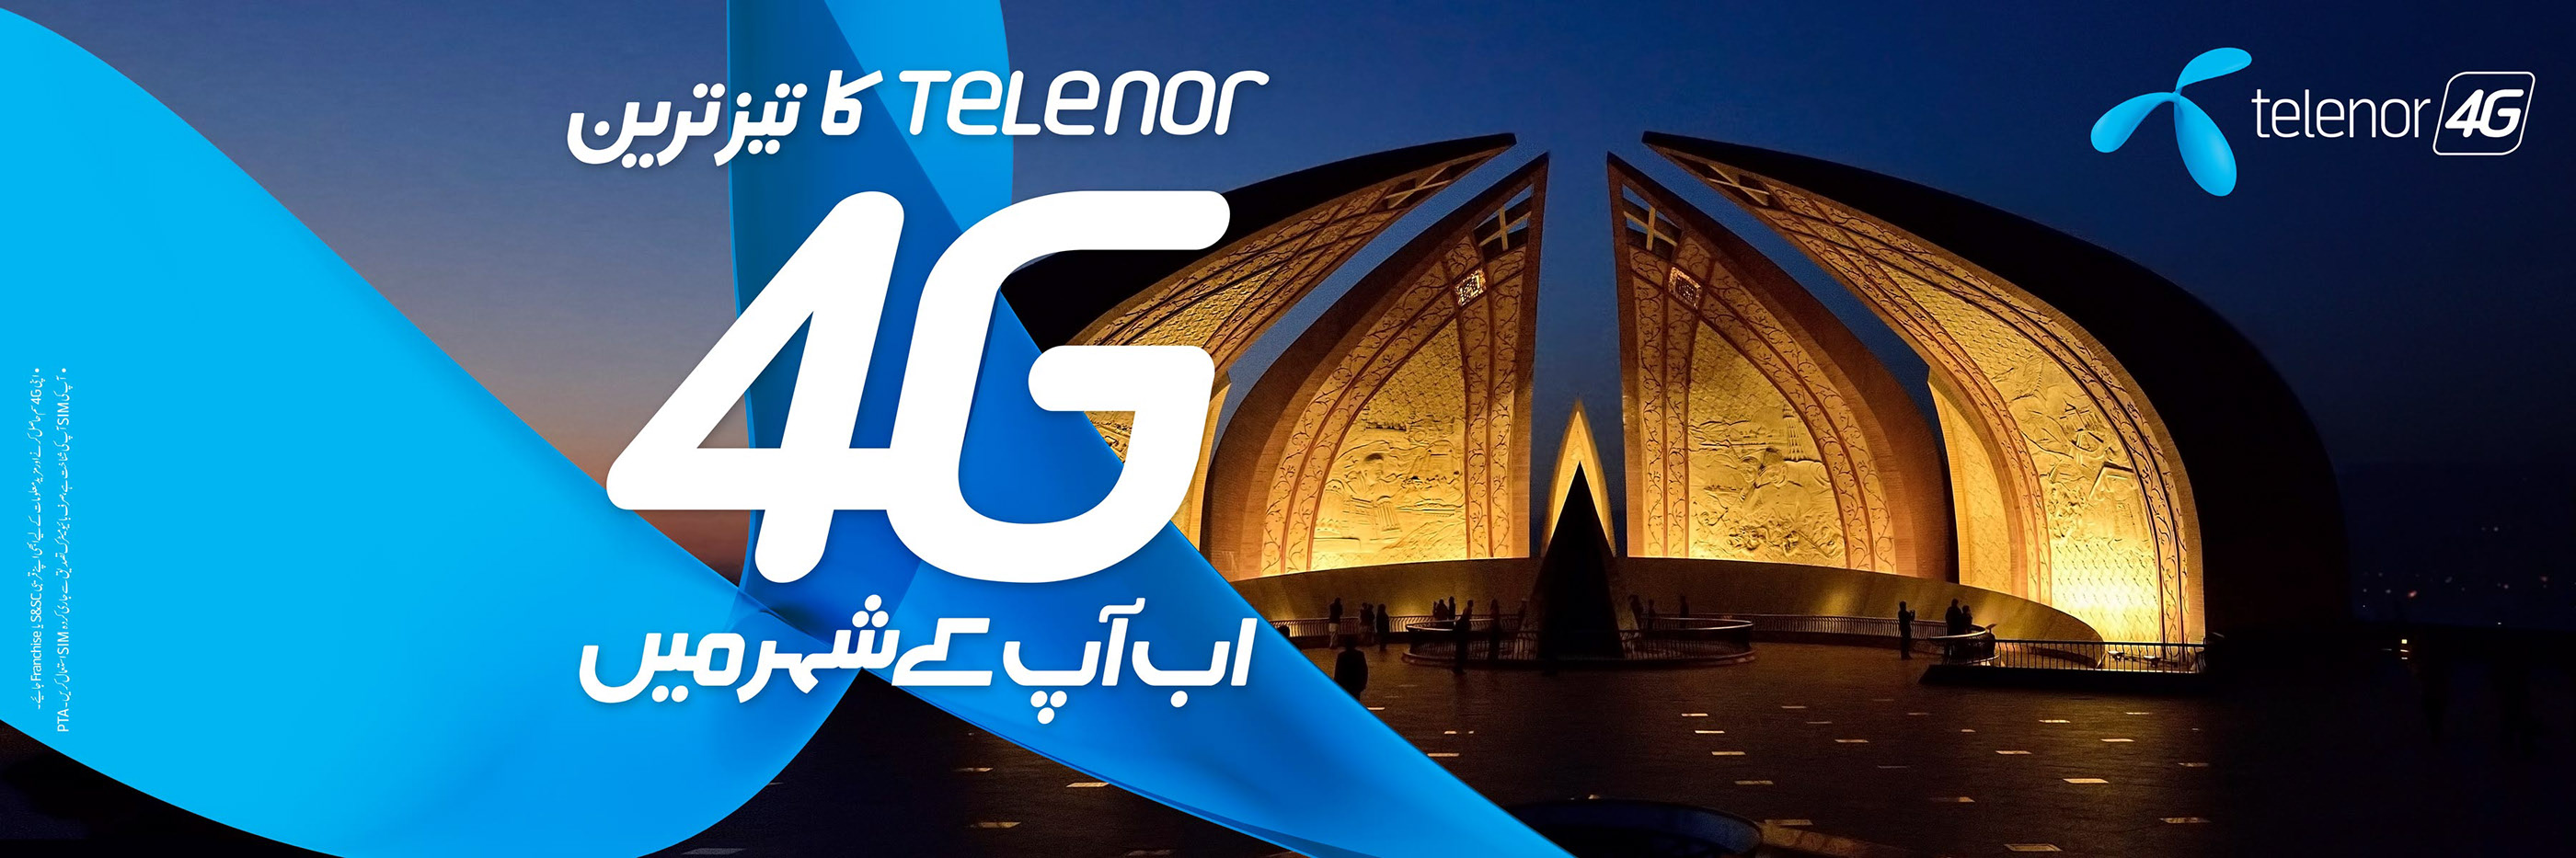 Telenor Work on Behance